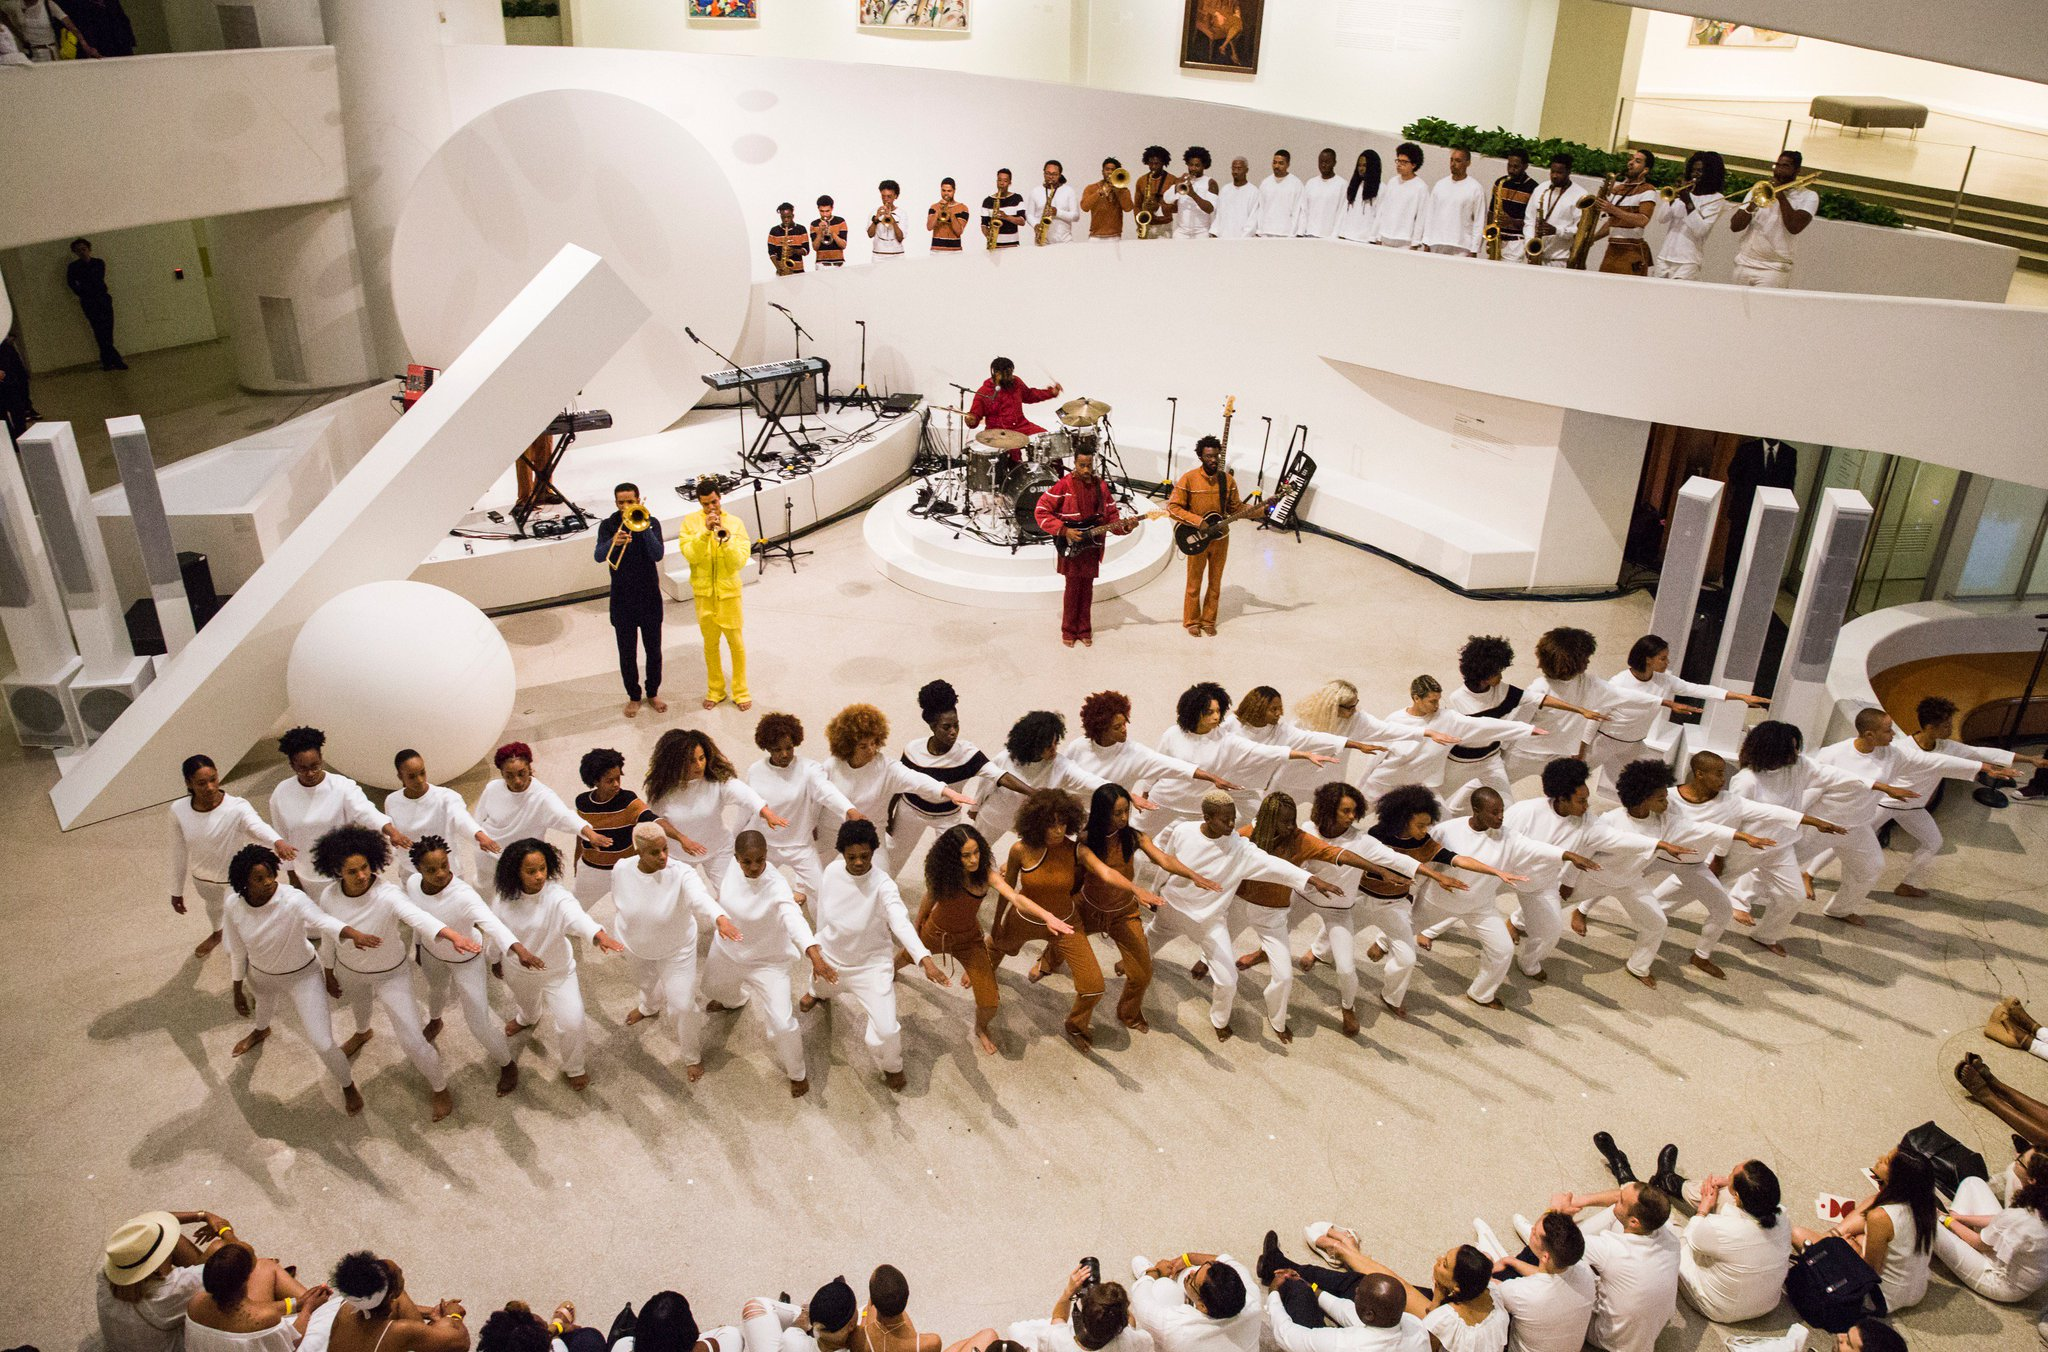 Here's what Solange's performance at the @Guggenheim looked like. https://t.co/SHlQCC3cm6 https://t.co/FXVSyOpXxb